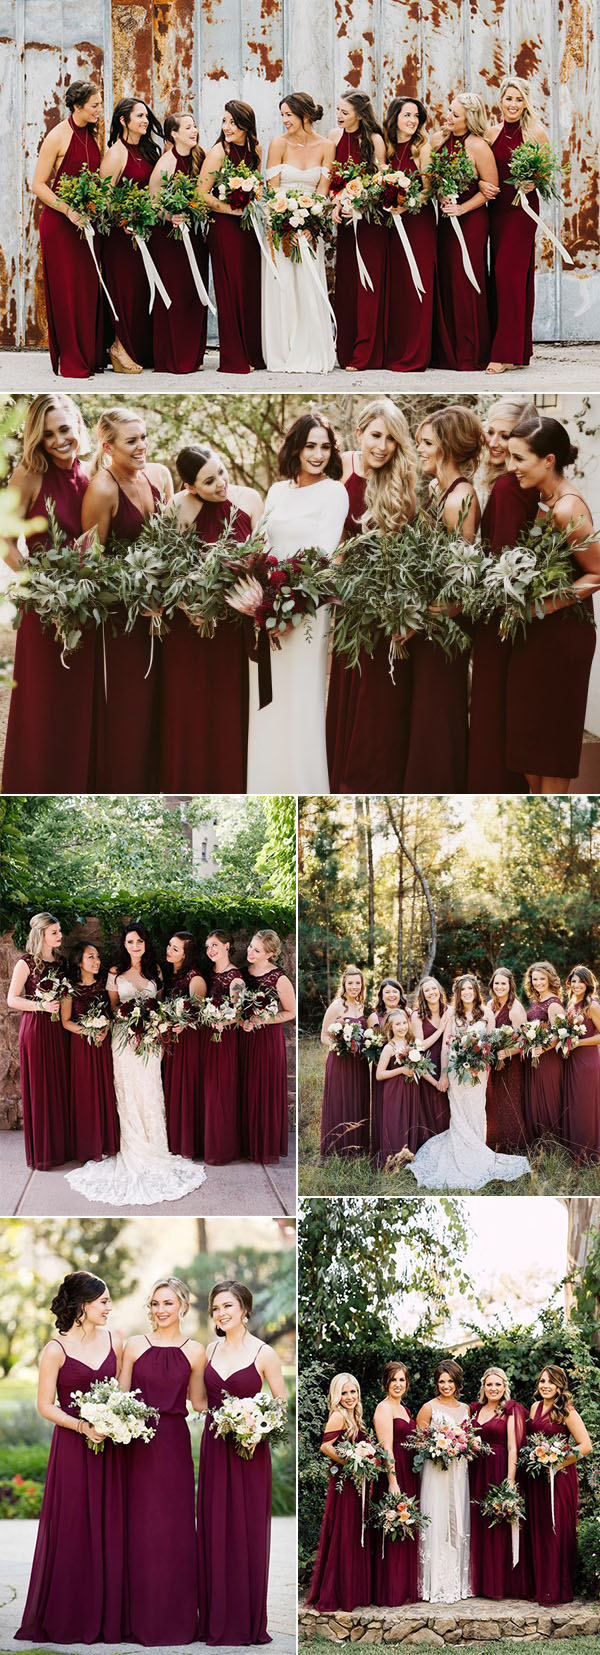 50+ Refined Burgundy and Marsala Wedding Color Ideas for Fall Brides